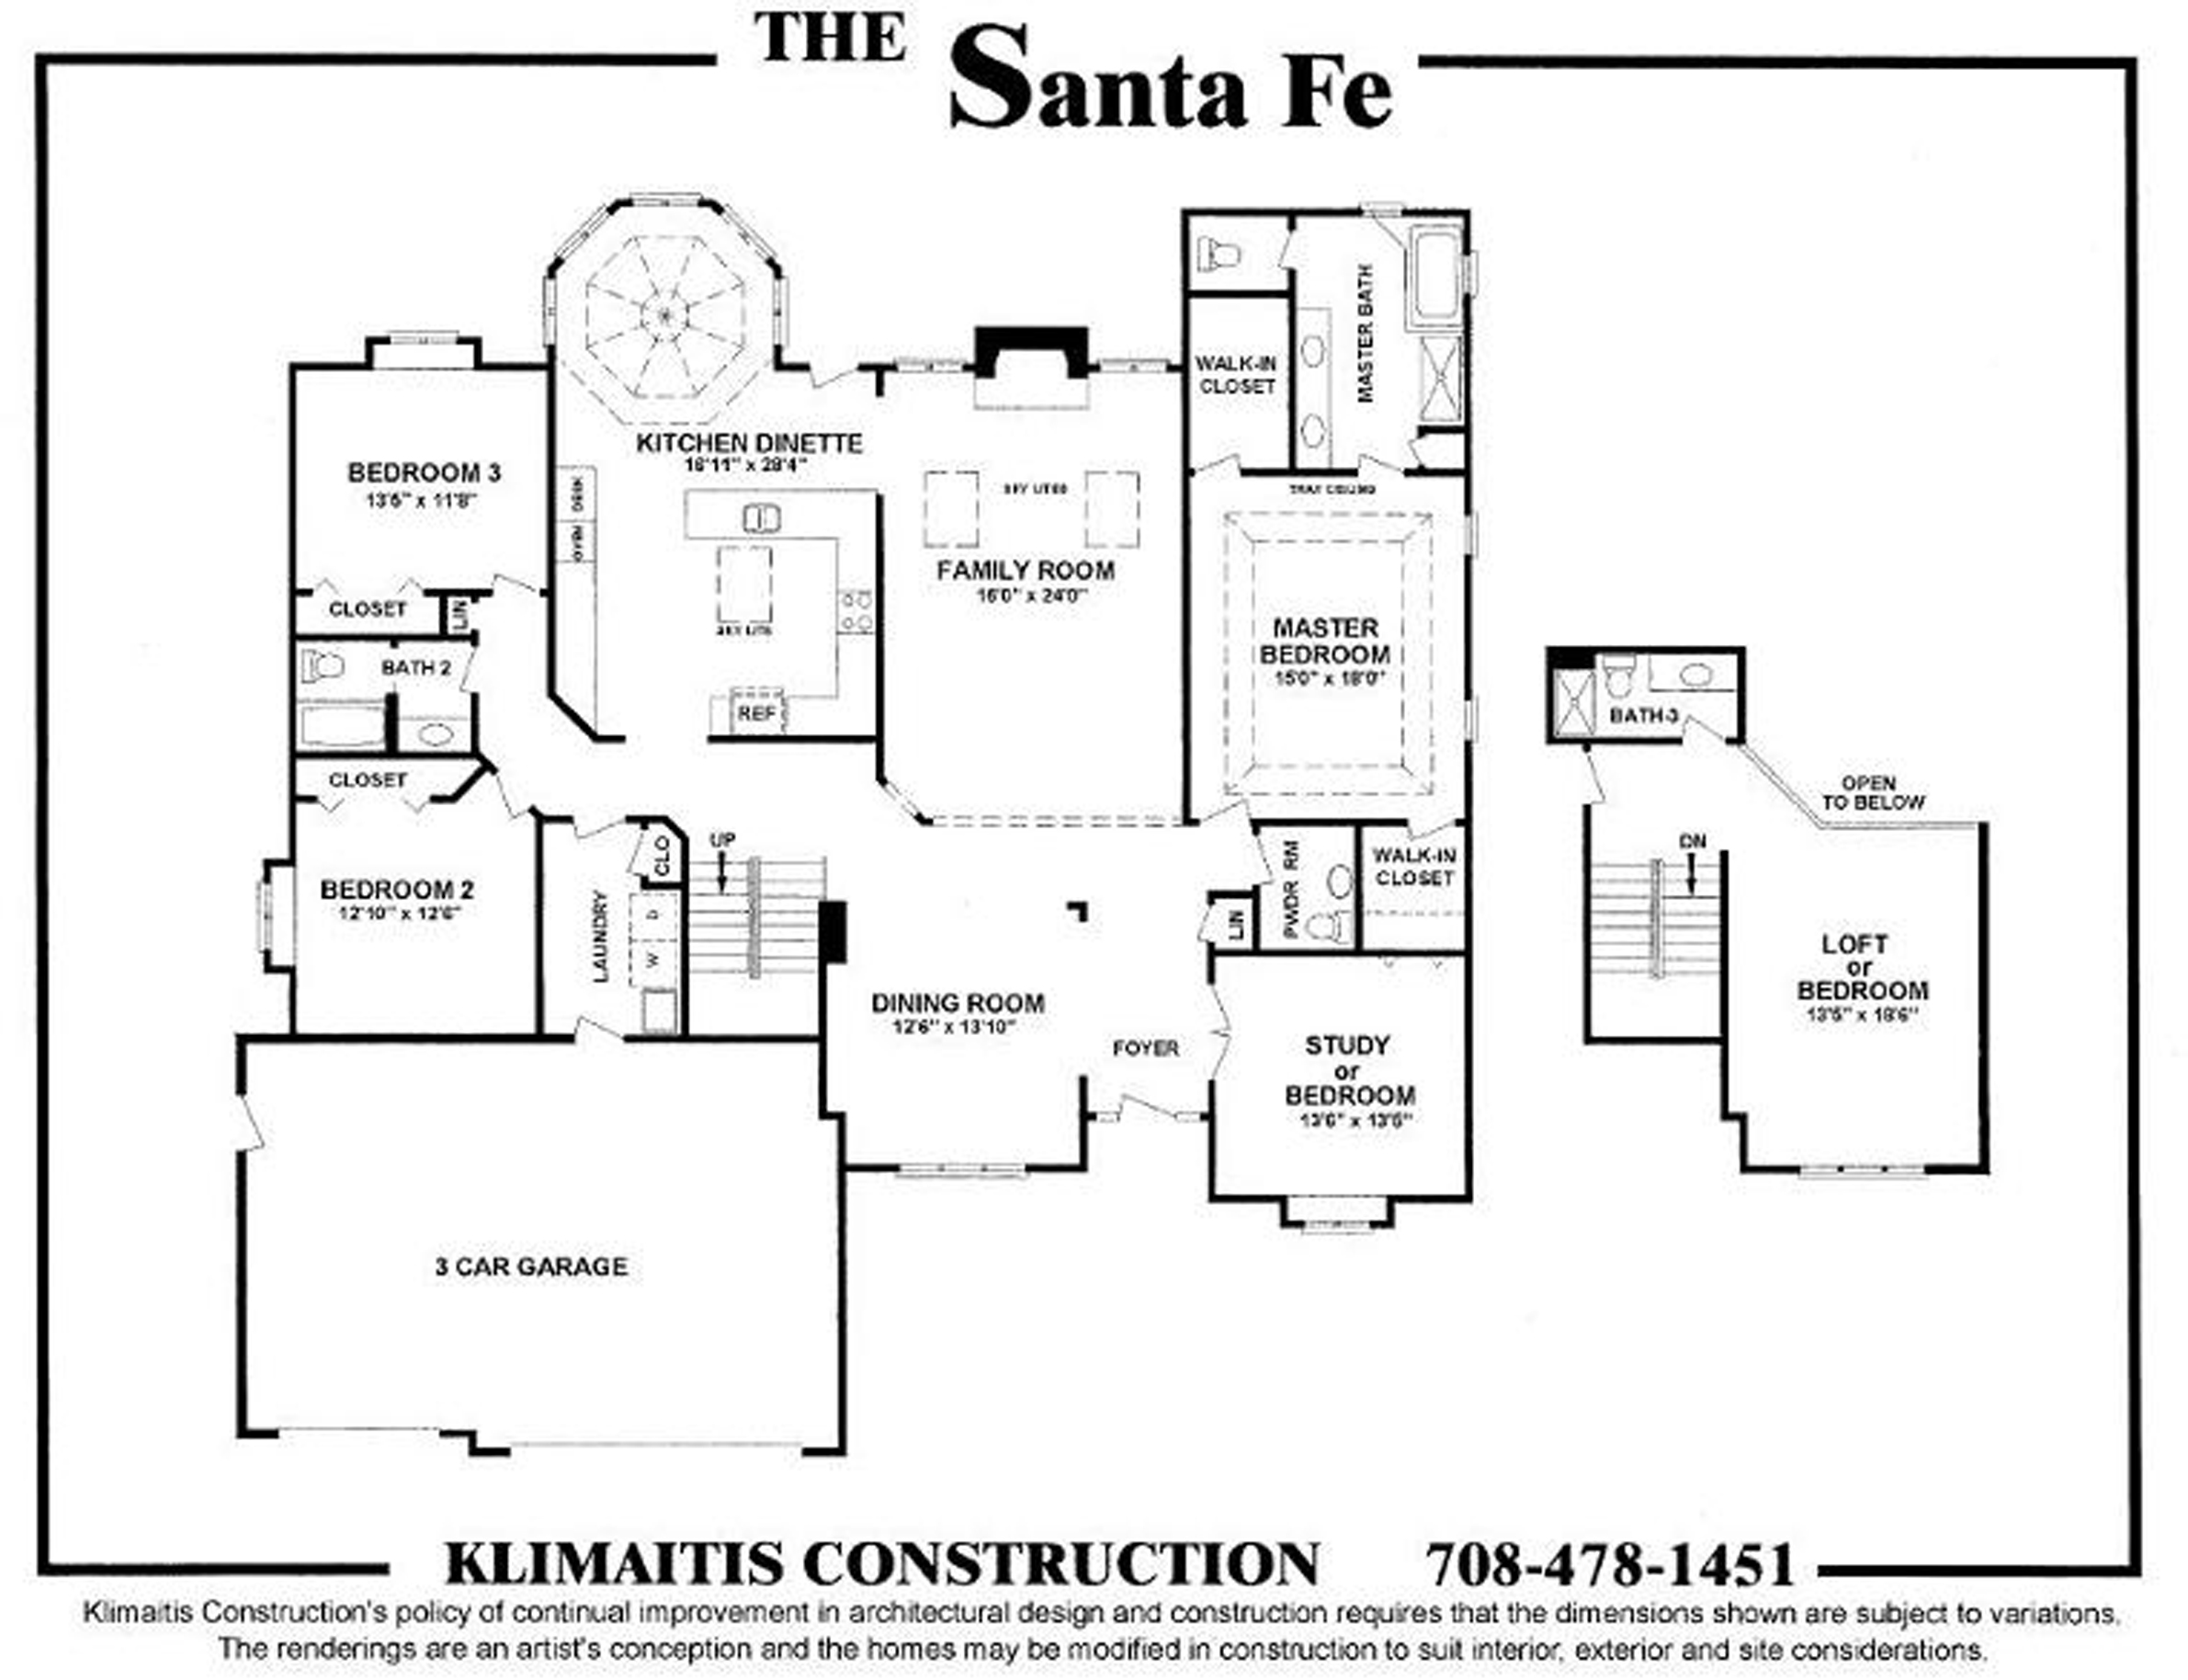 Santa fe floor plans home flooring ideas for Santa fe floor plans